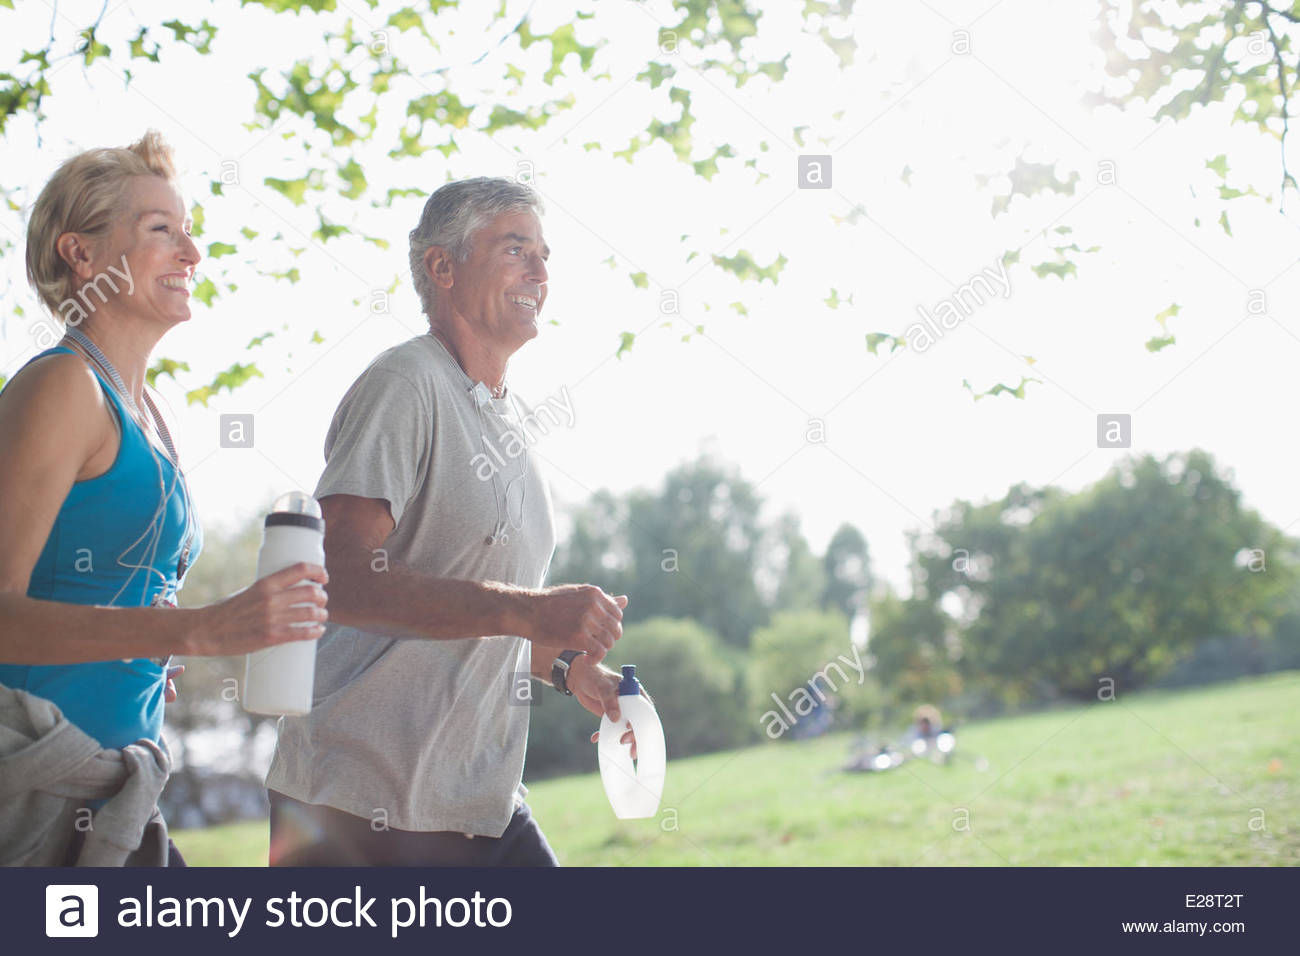 Couple jogging together with water bottles - Stock Image